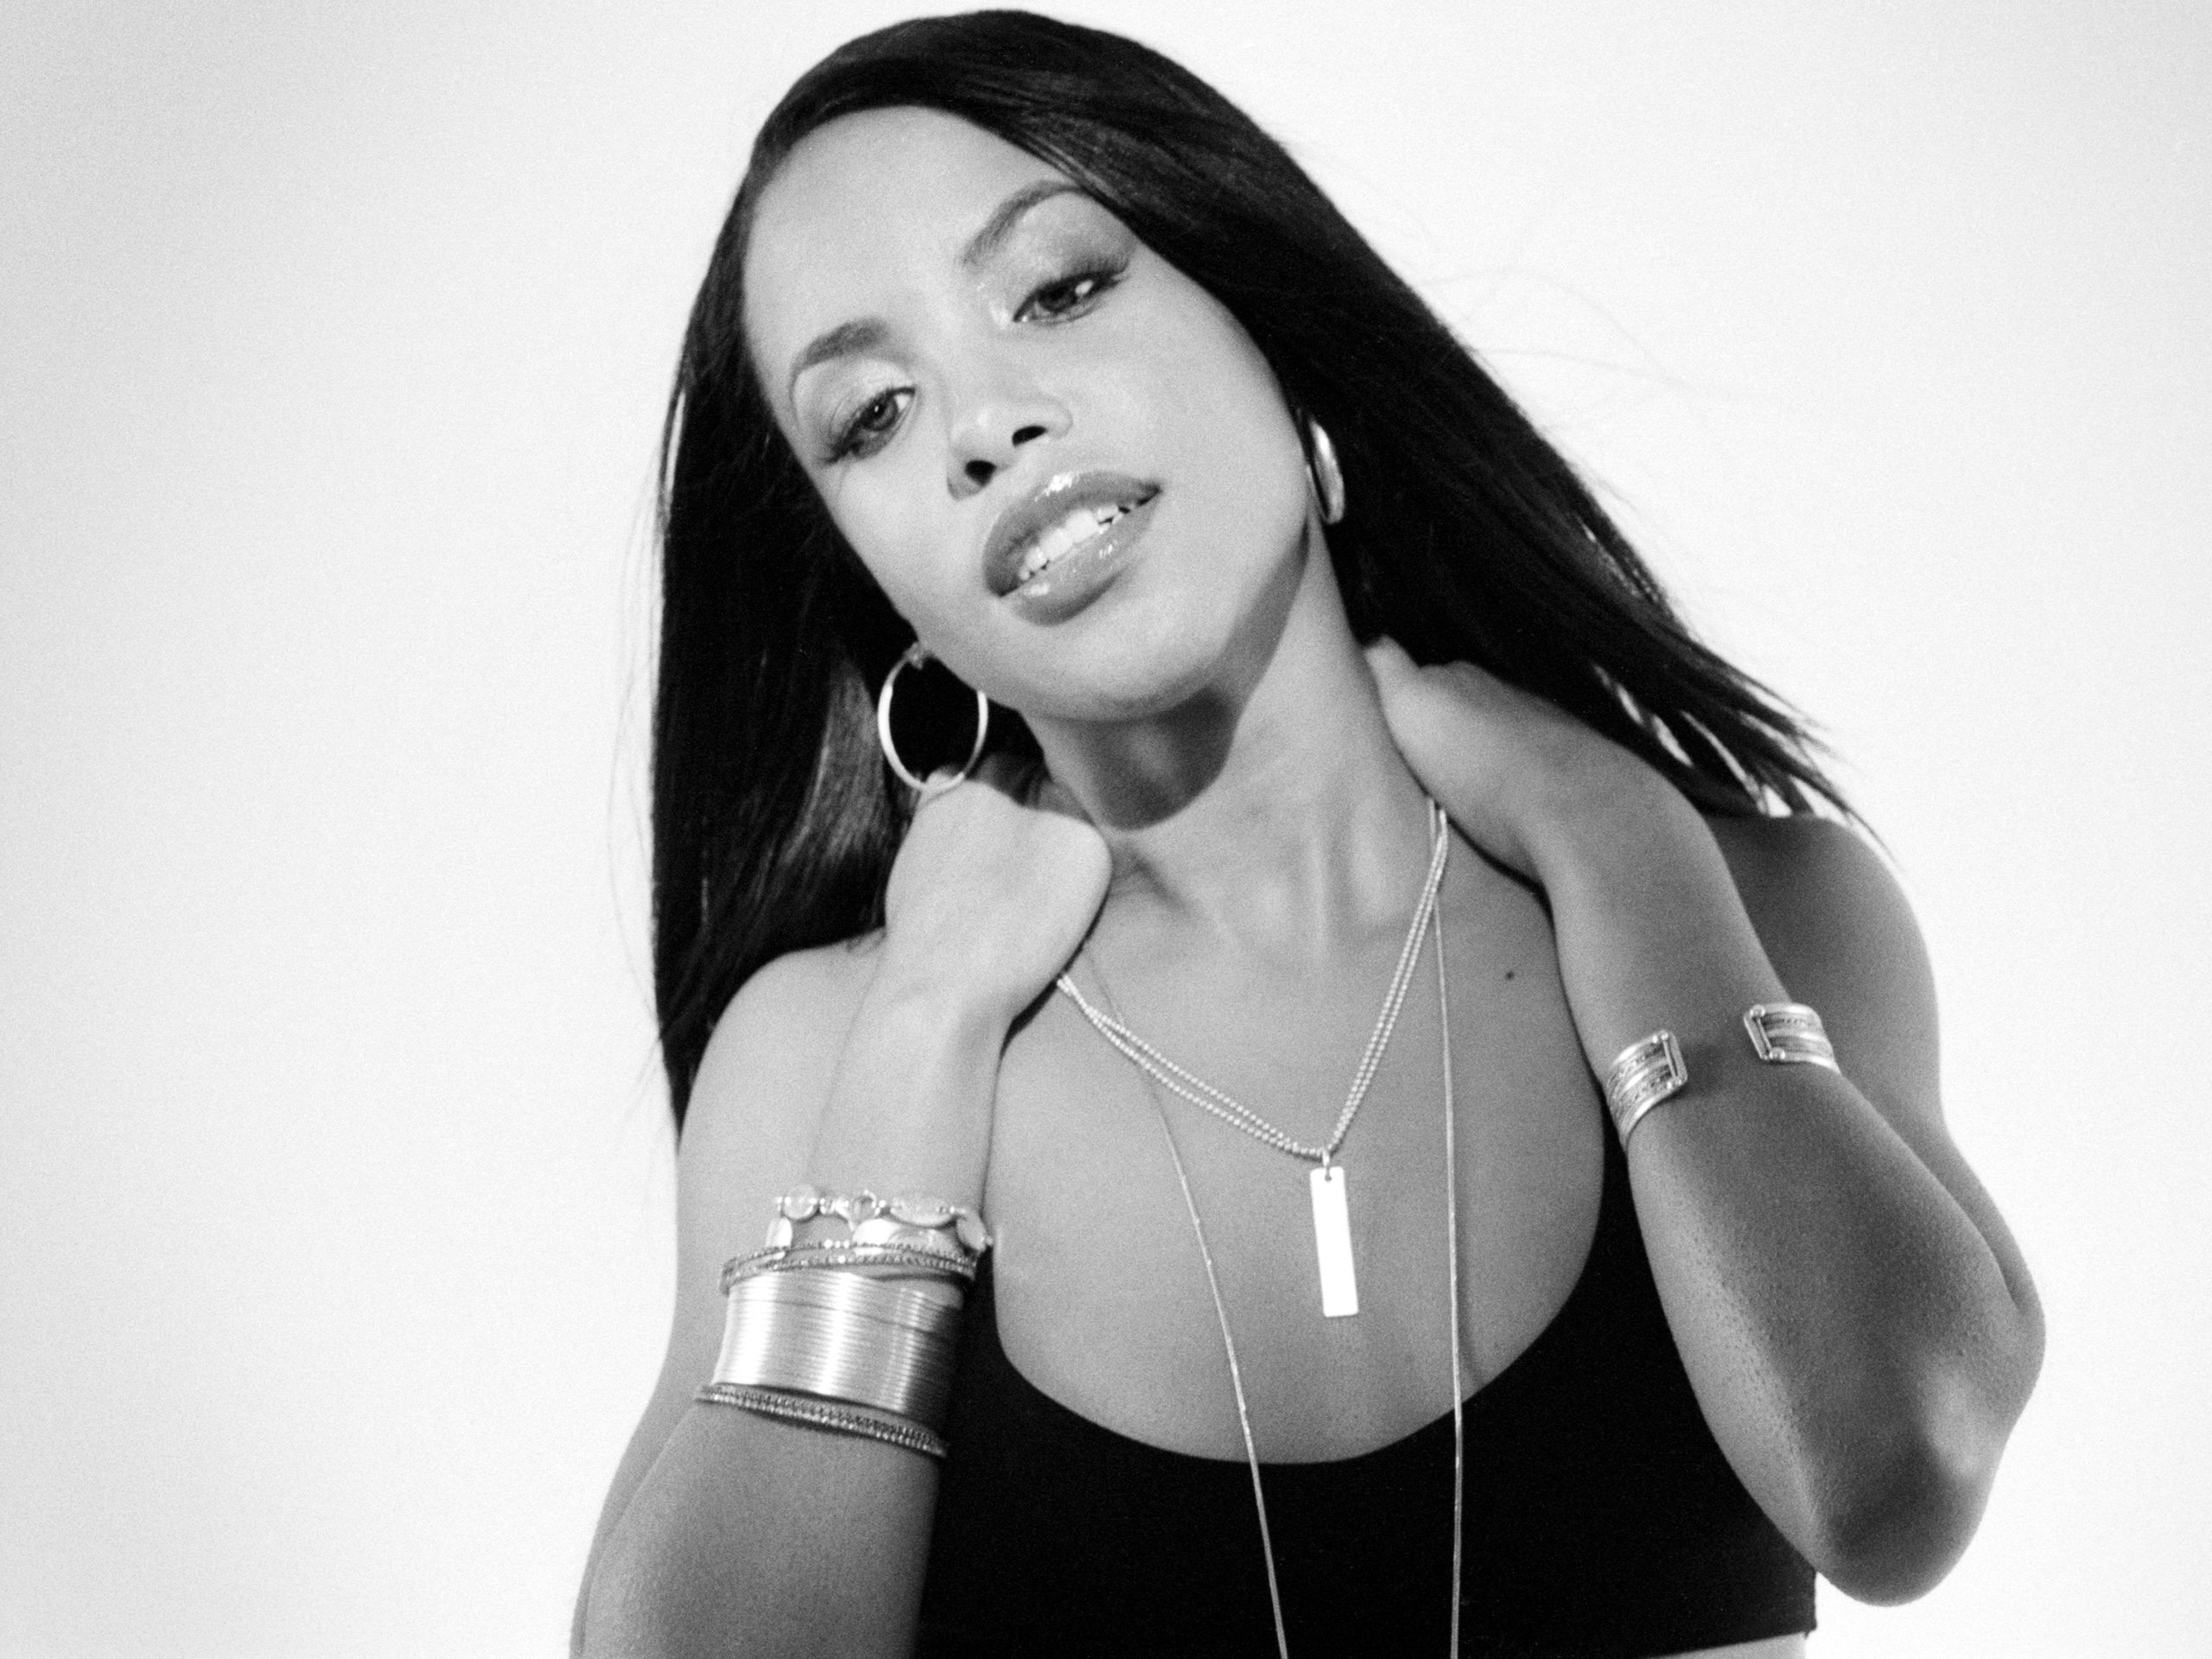 ca. 2001 - Aaliyah --- Hype Williams/Corbis Outline